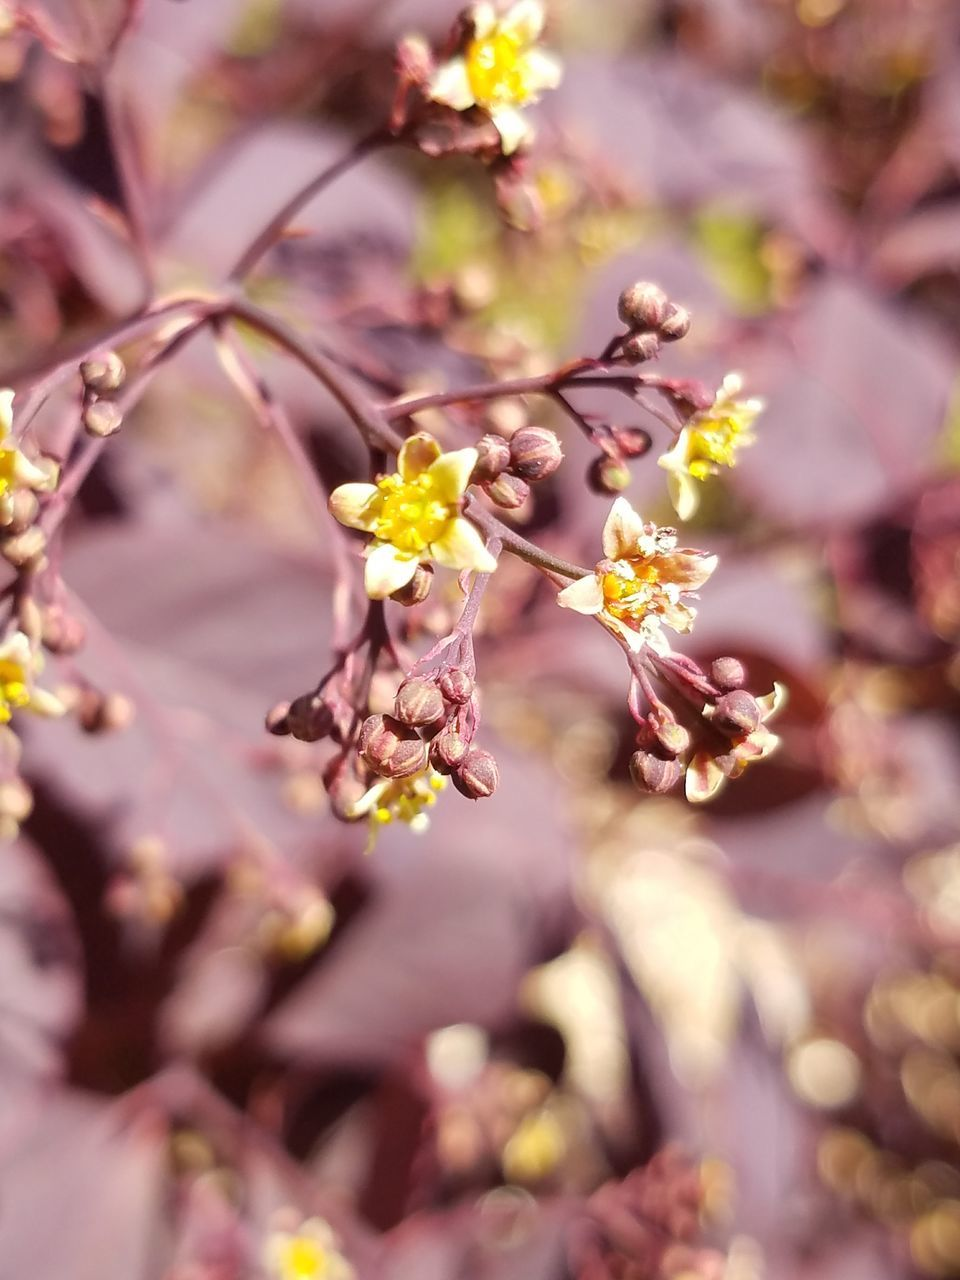 flower, growth, nature, blossom, fragility, no people, beauty in nature, tree, outdoors, freshness, day, branch, close-up